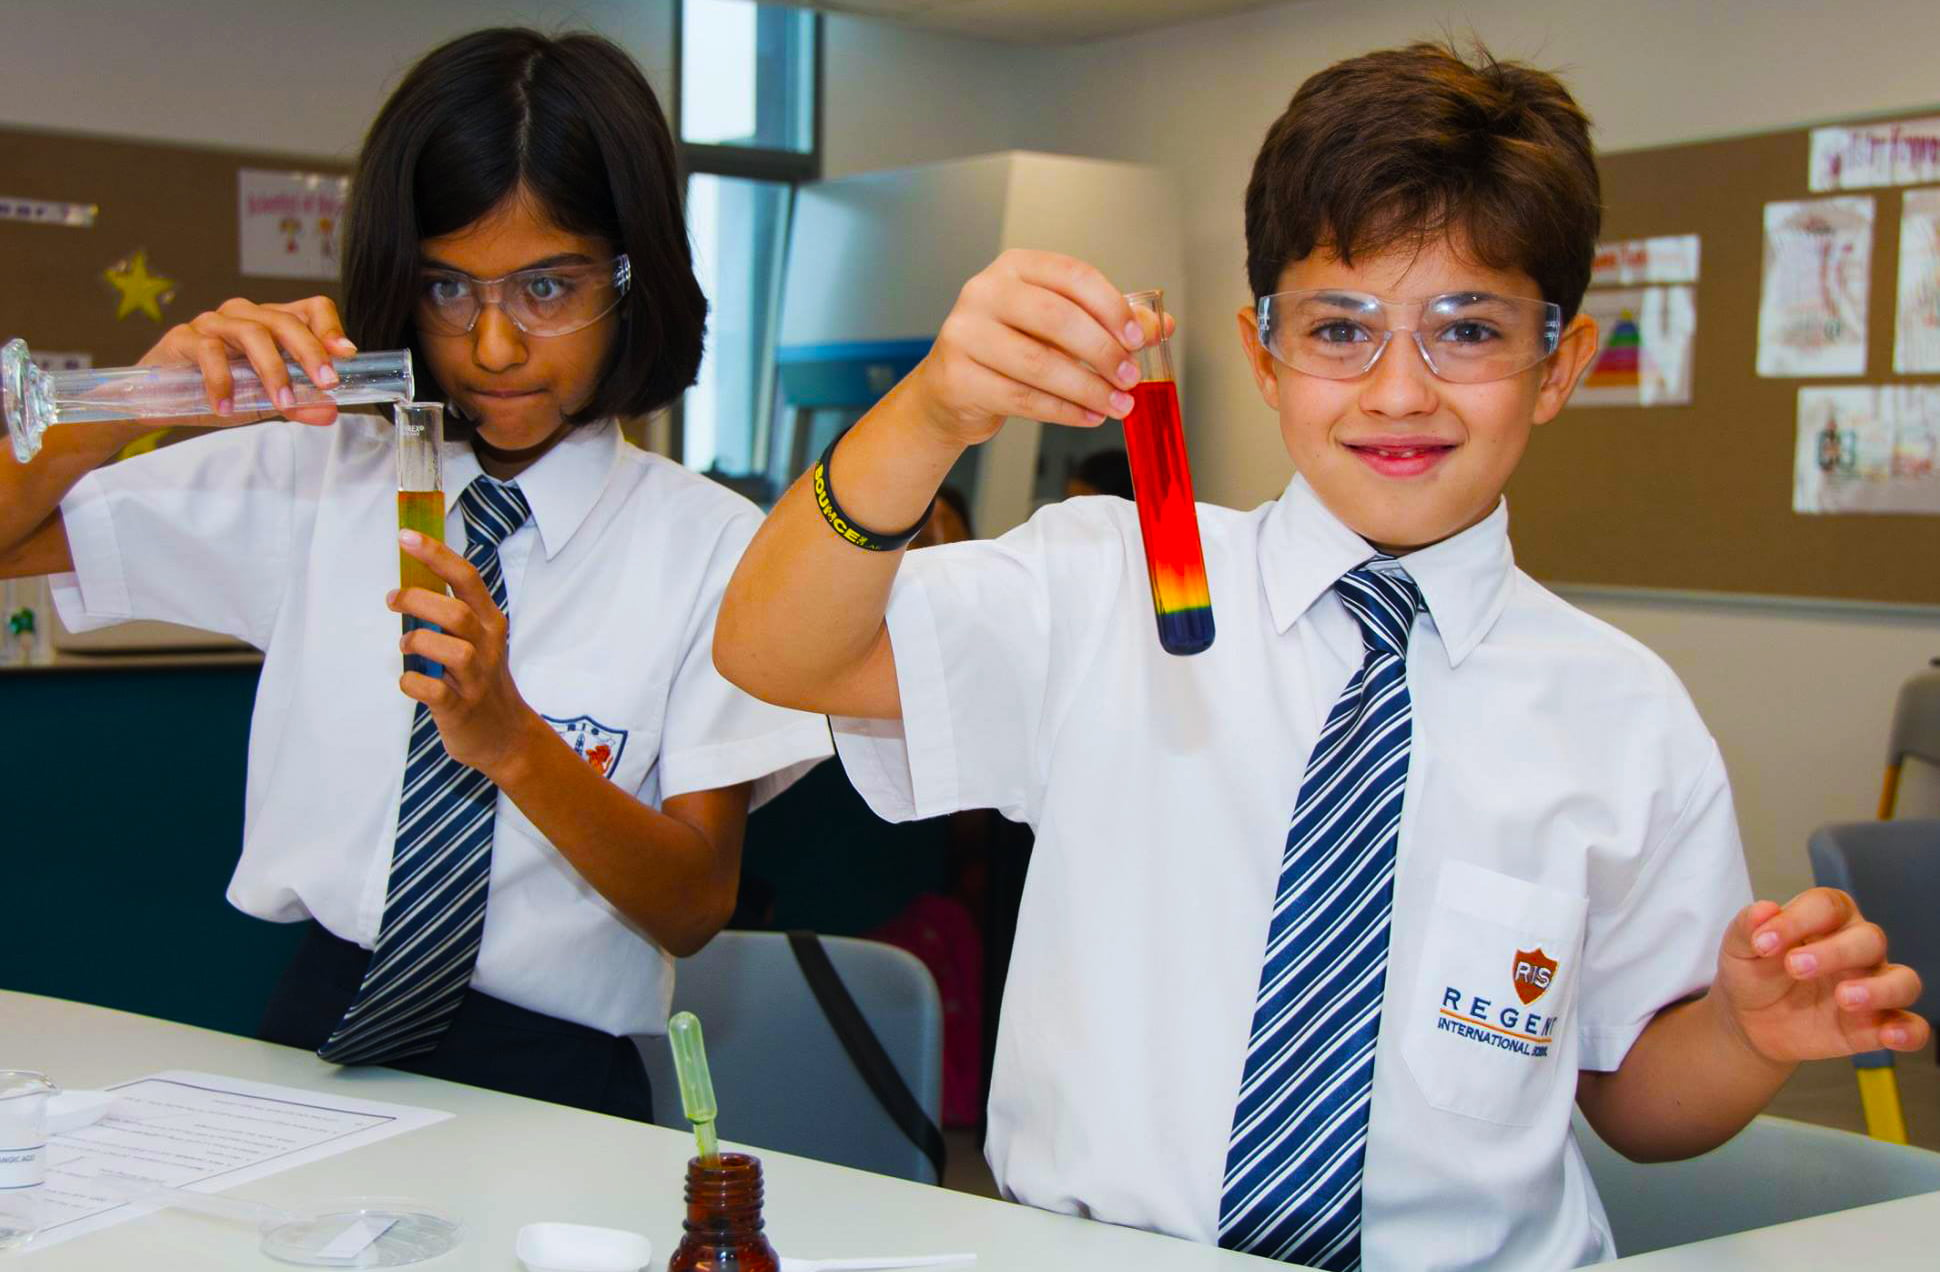 Photograph of children conducting scientific experiments at Regent International School in Dubai